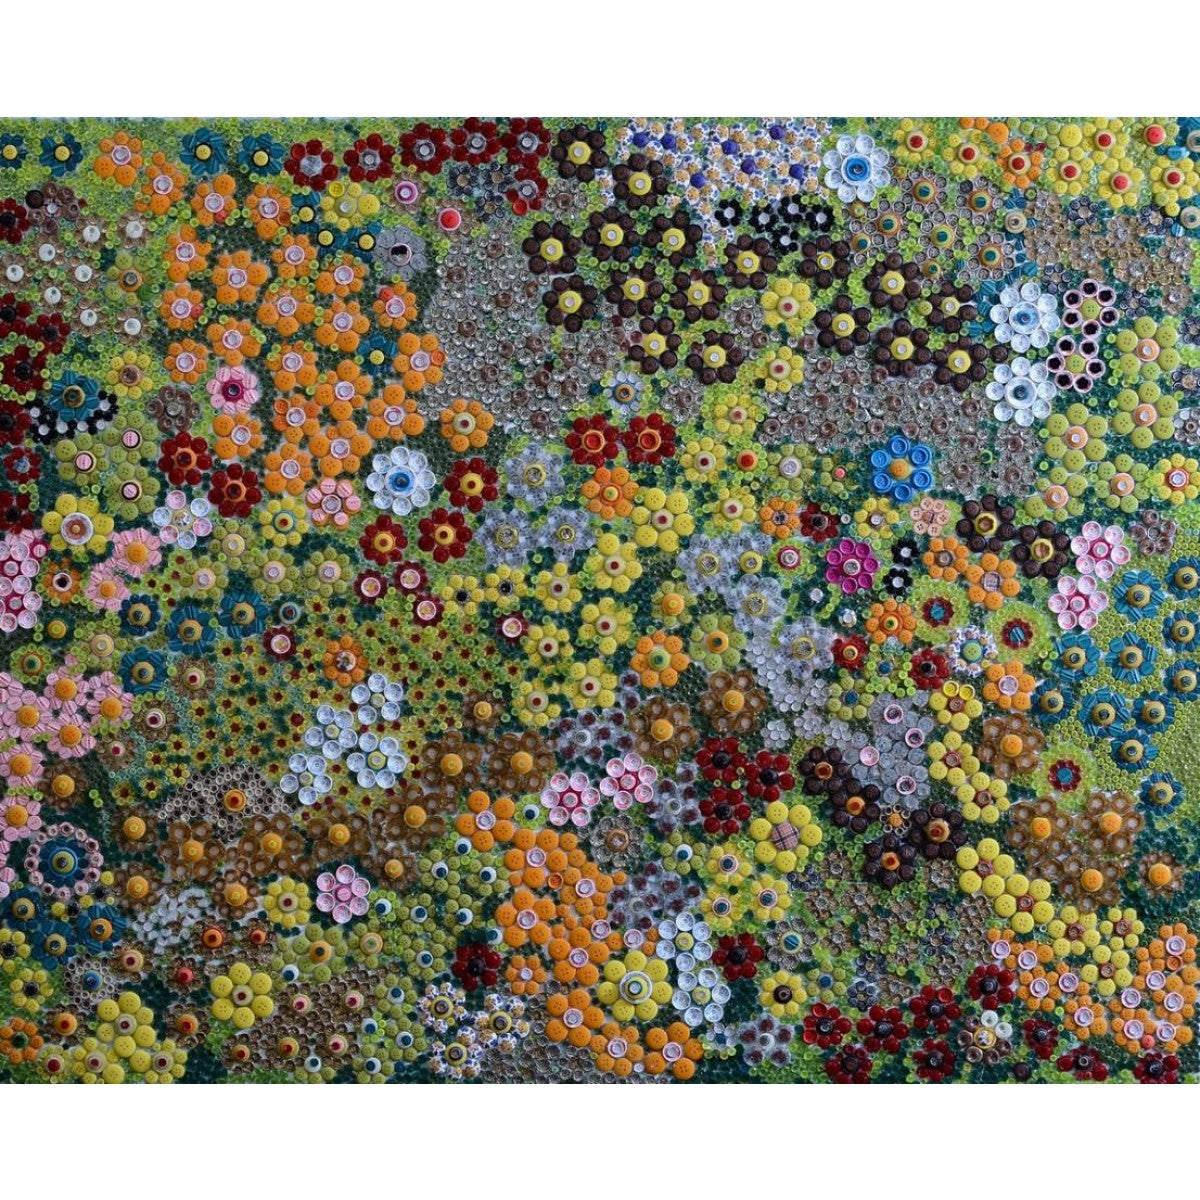 Flowers in Buttons_2 by Tal Sher